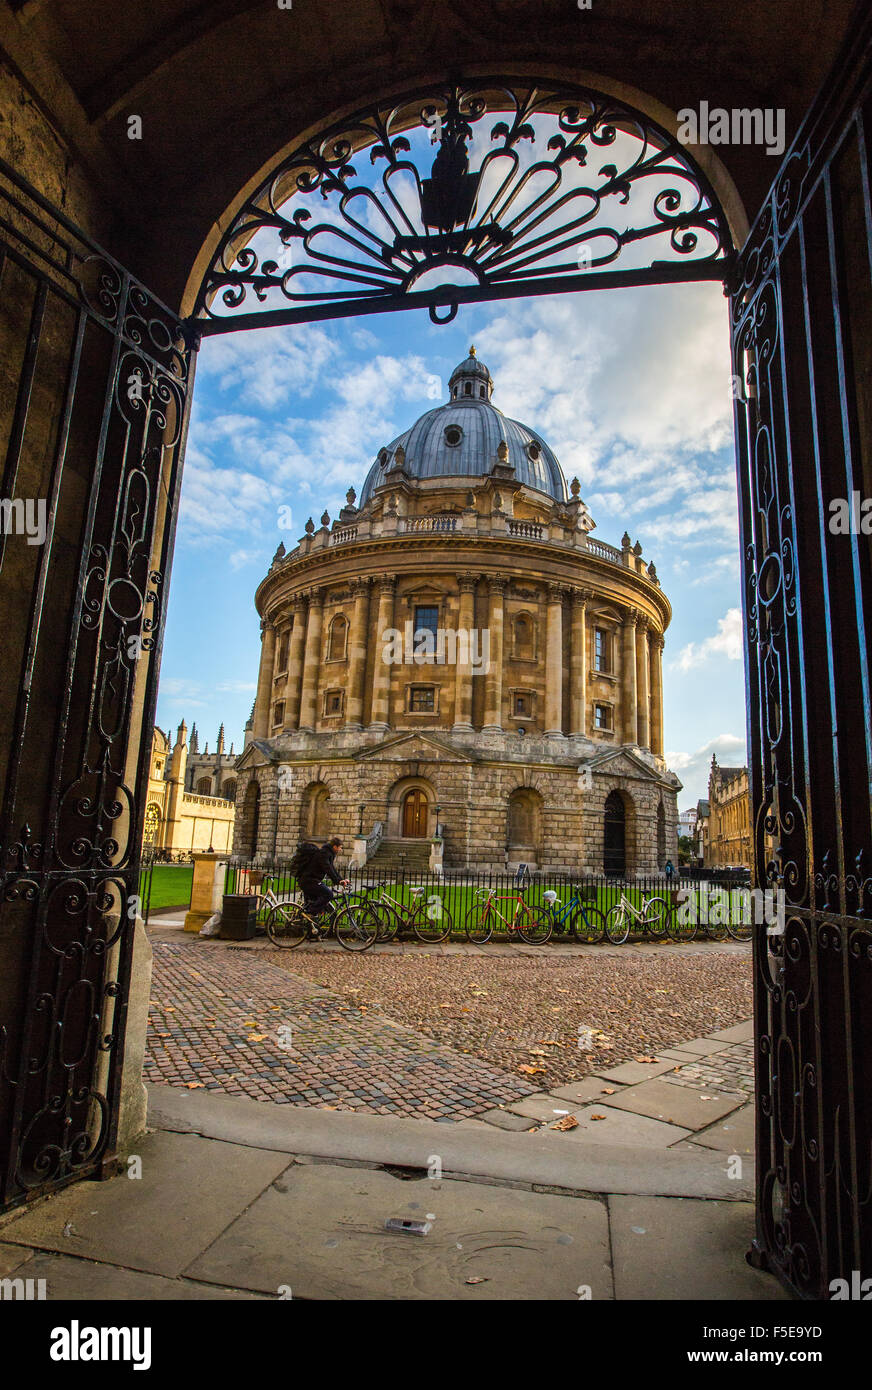 Radcliffe Camera, Oxford, Oxfordshire, England, United Kingdom, Europe - Stock Image